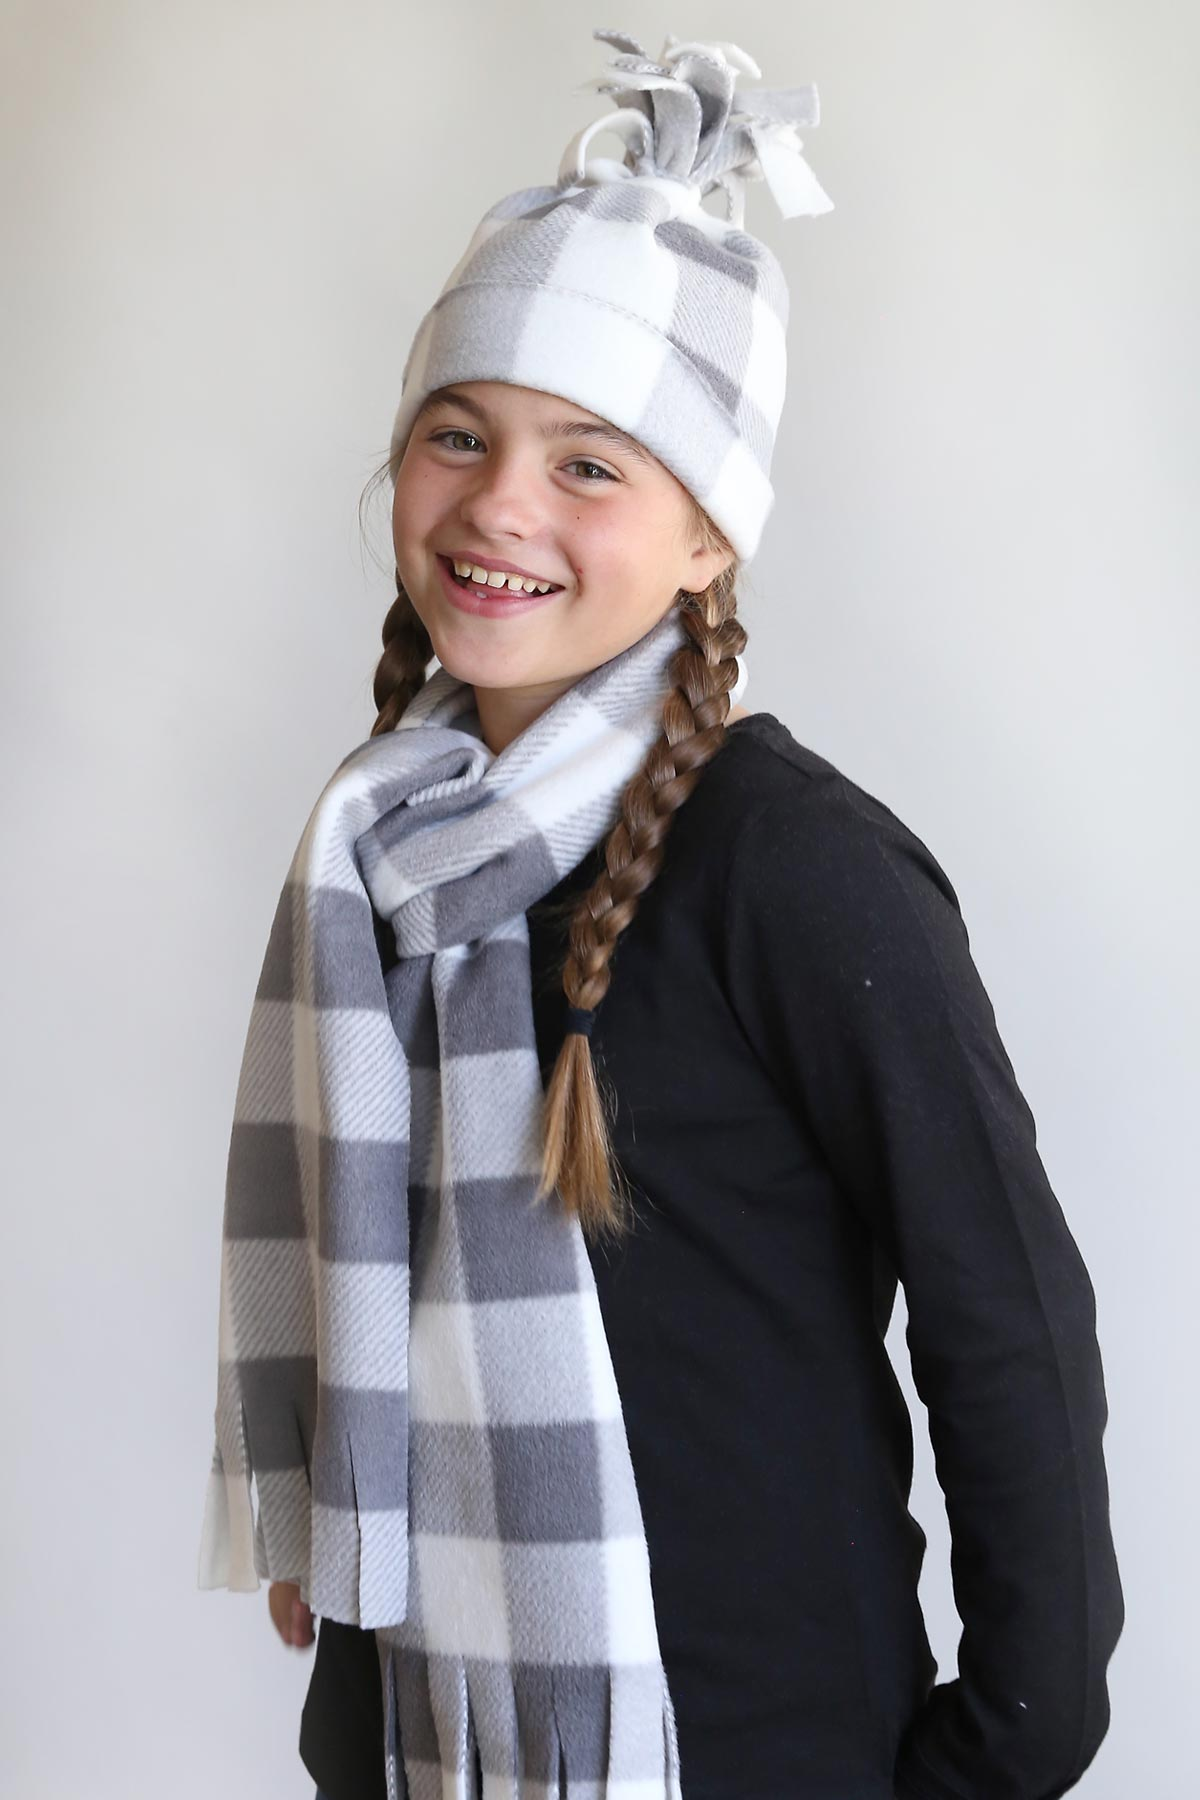 How to sew a fleece hat and scarf in under 20 minutes